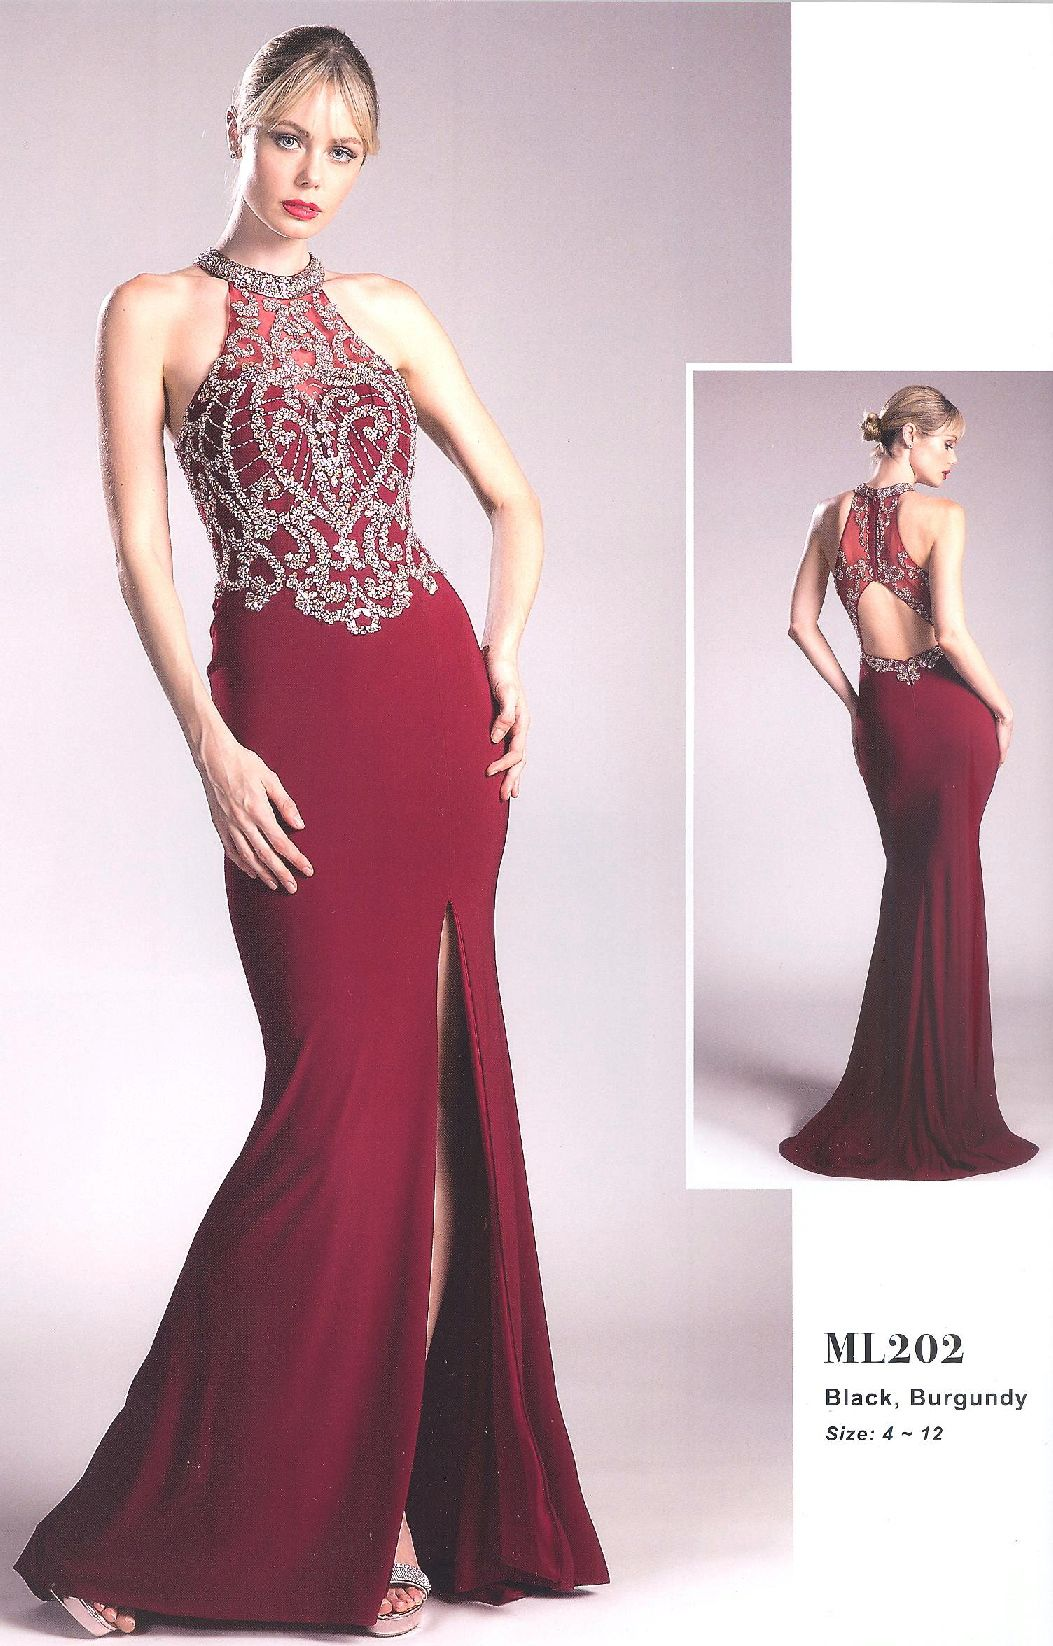 Prom dresses evening dresses under by cinderellaucbrueaddmlucbr